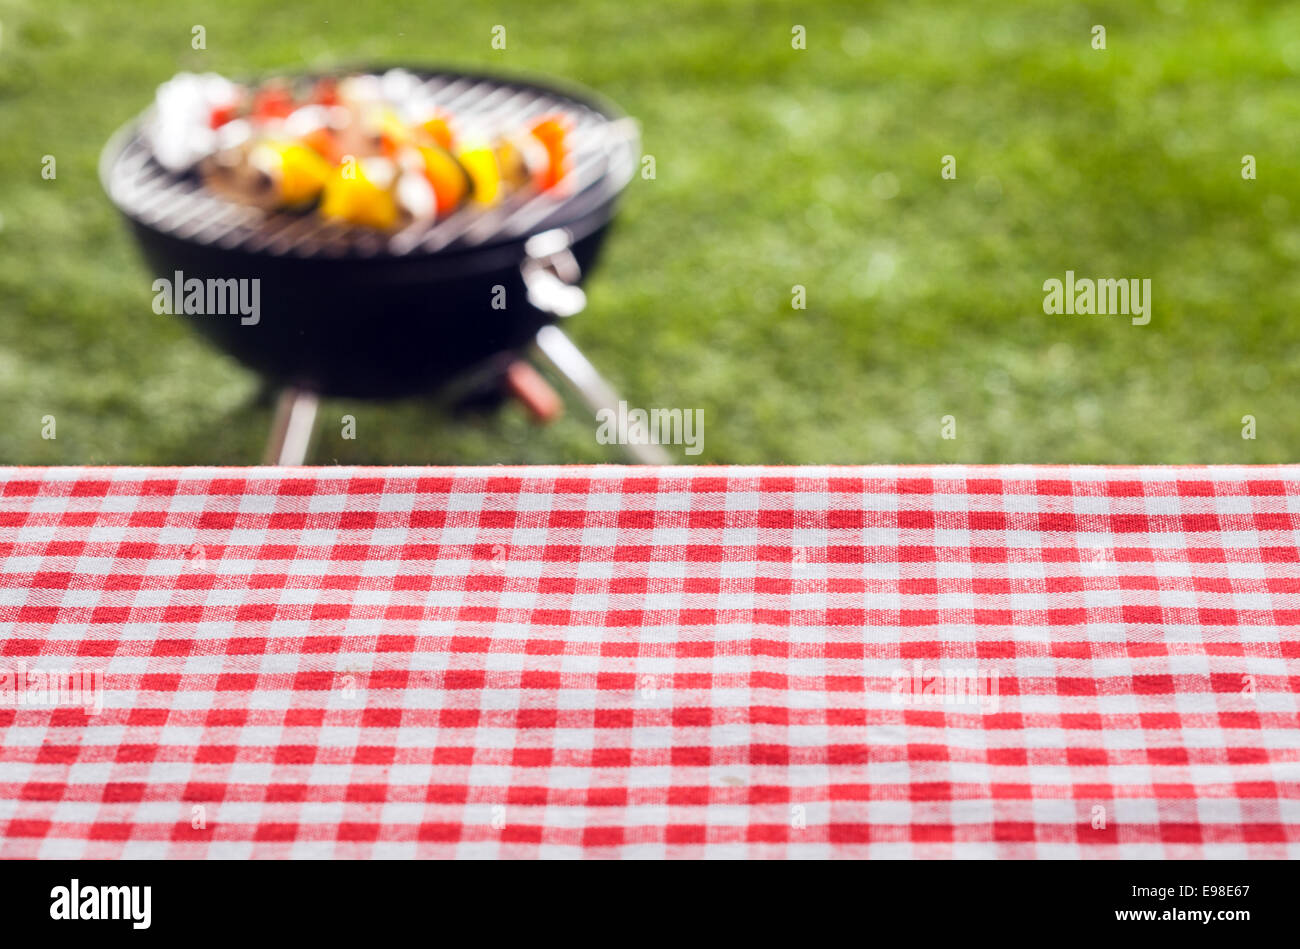 Picnic table background - Empty Picnic Table Background Covered In A Fresh Country Red And White Checked Cloth For Your